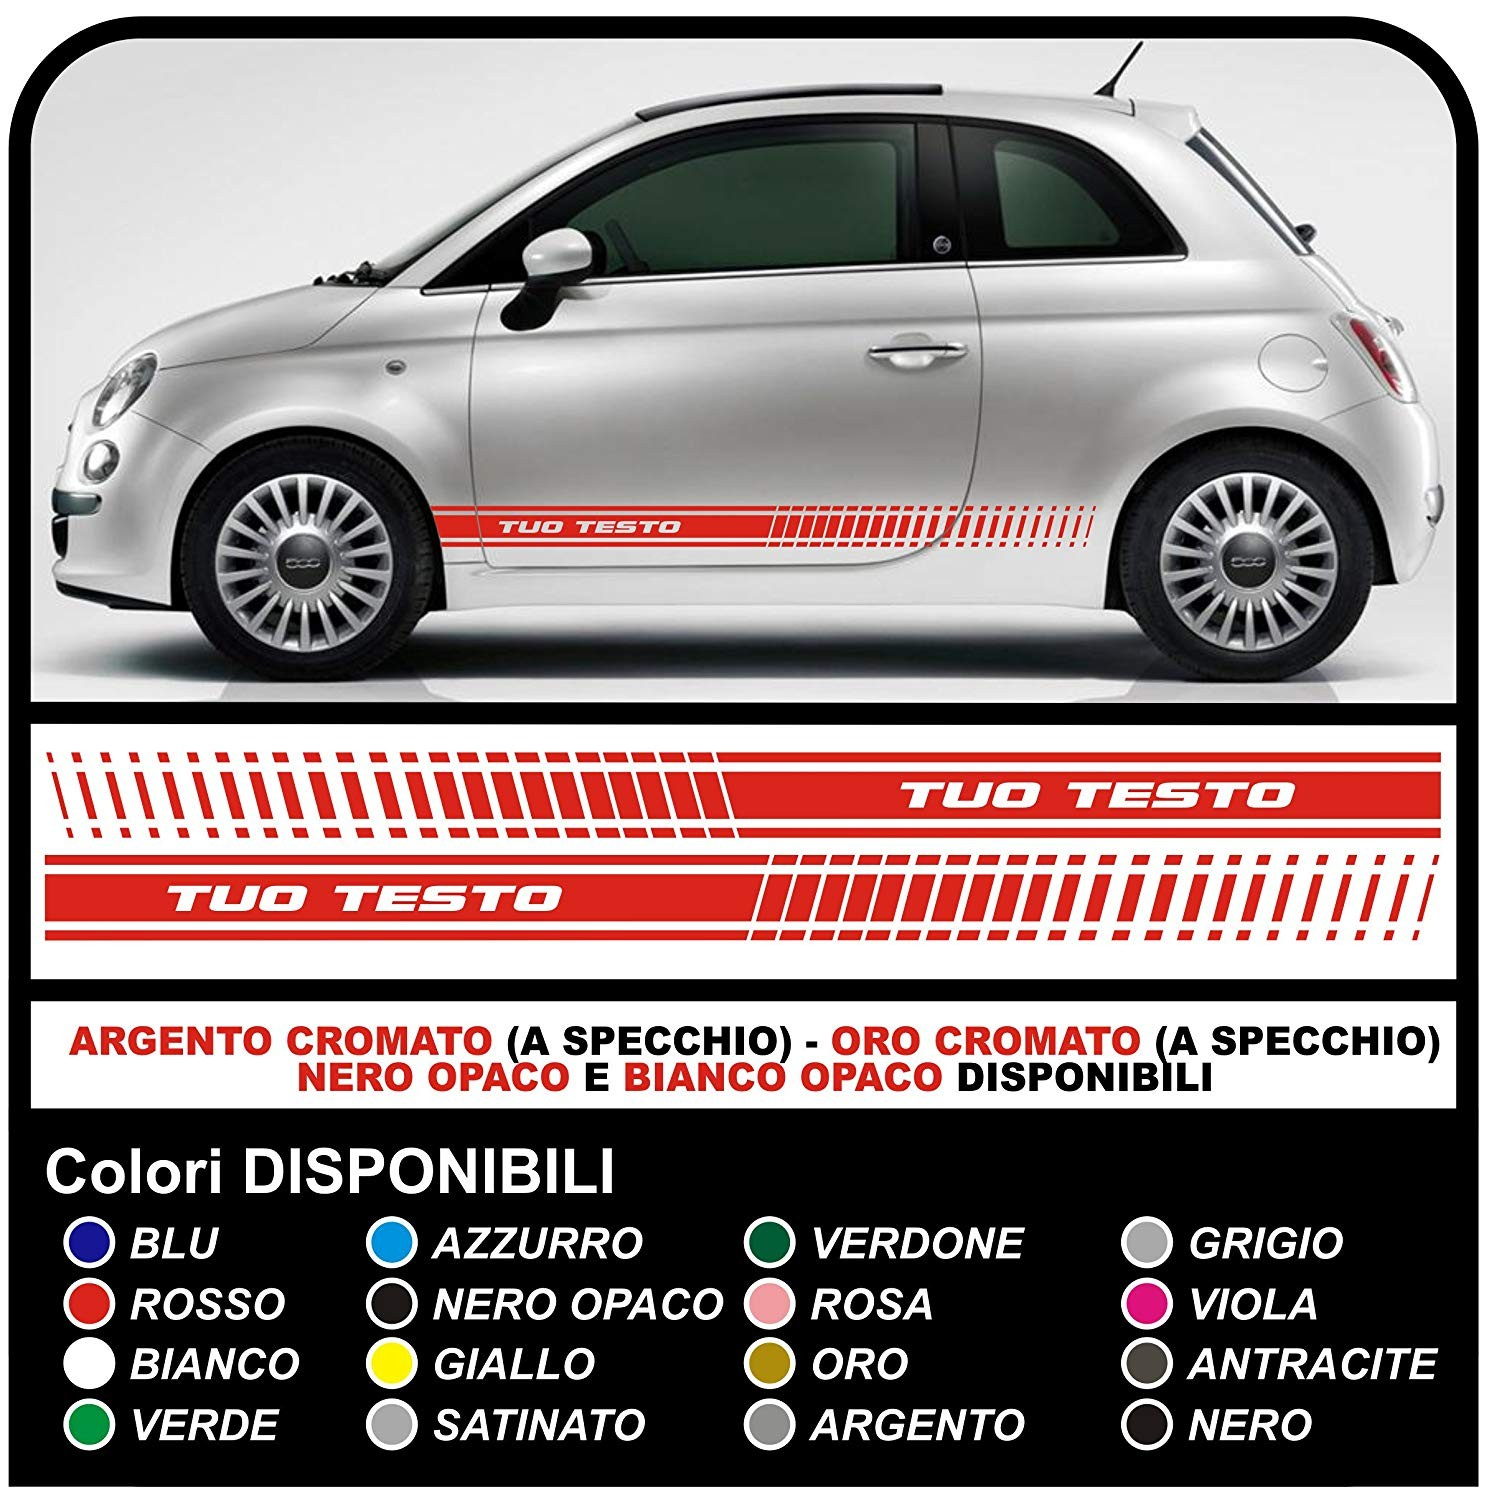 Stickers Abarth Side Side Panels For The Fiat 500 Abarth